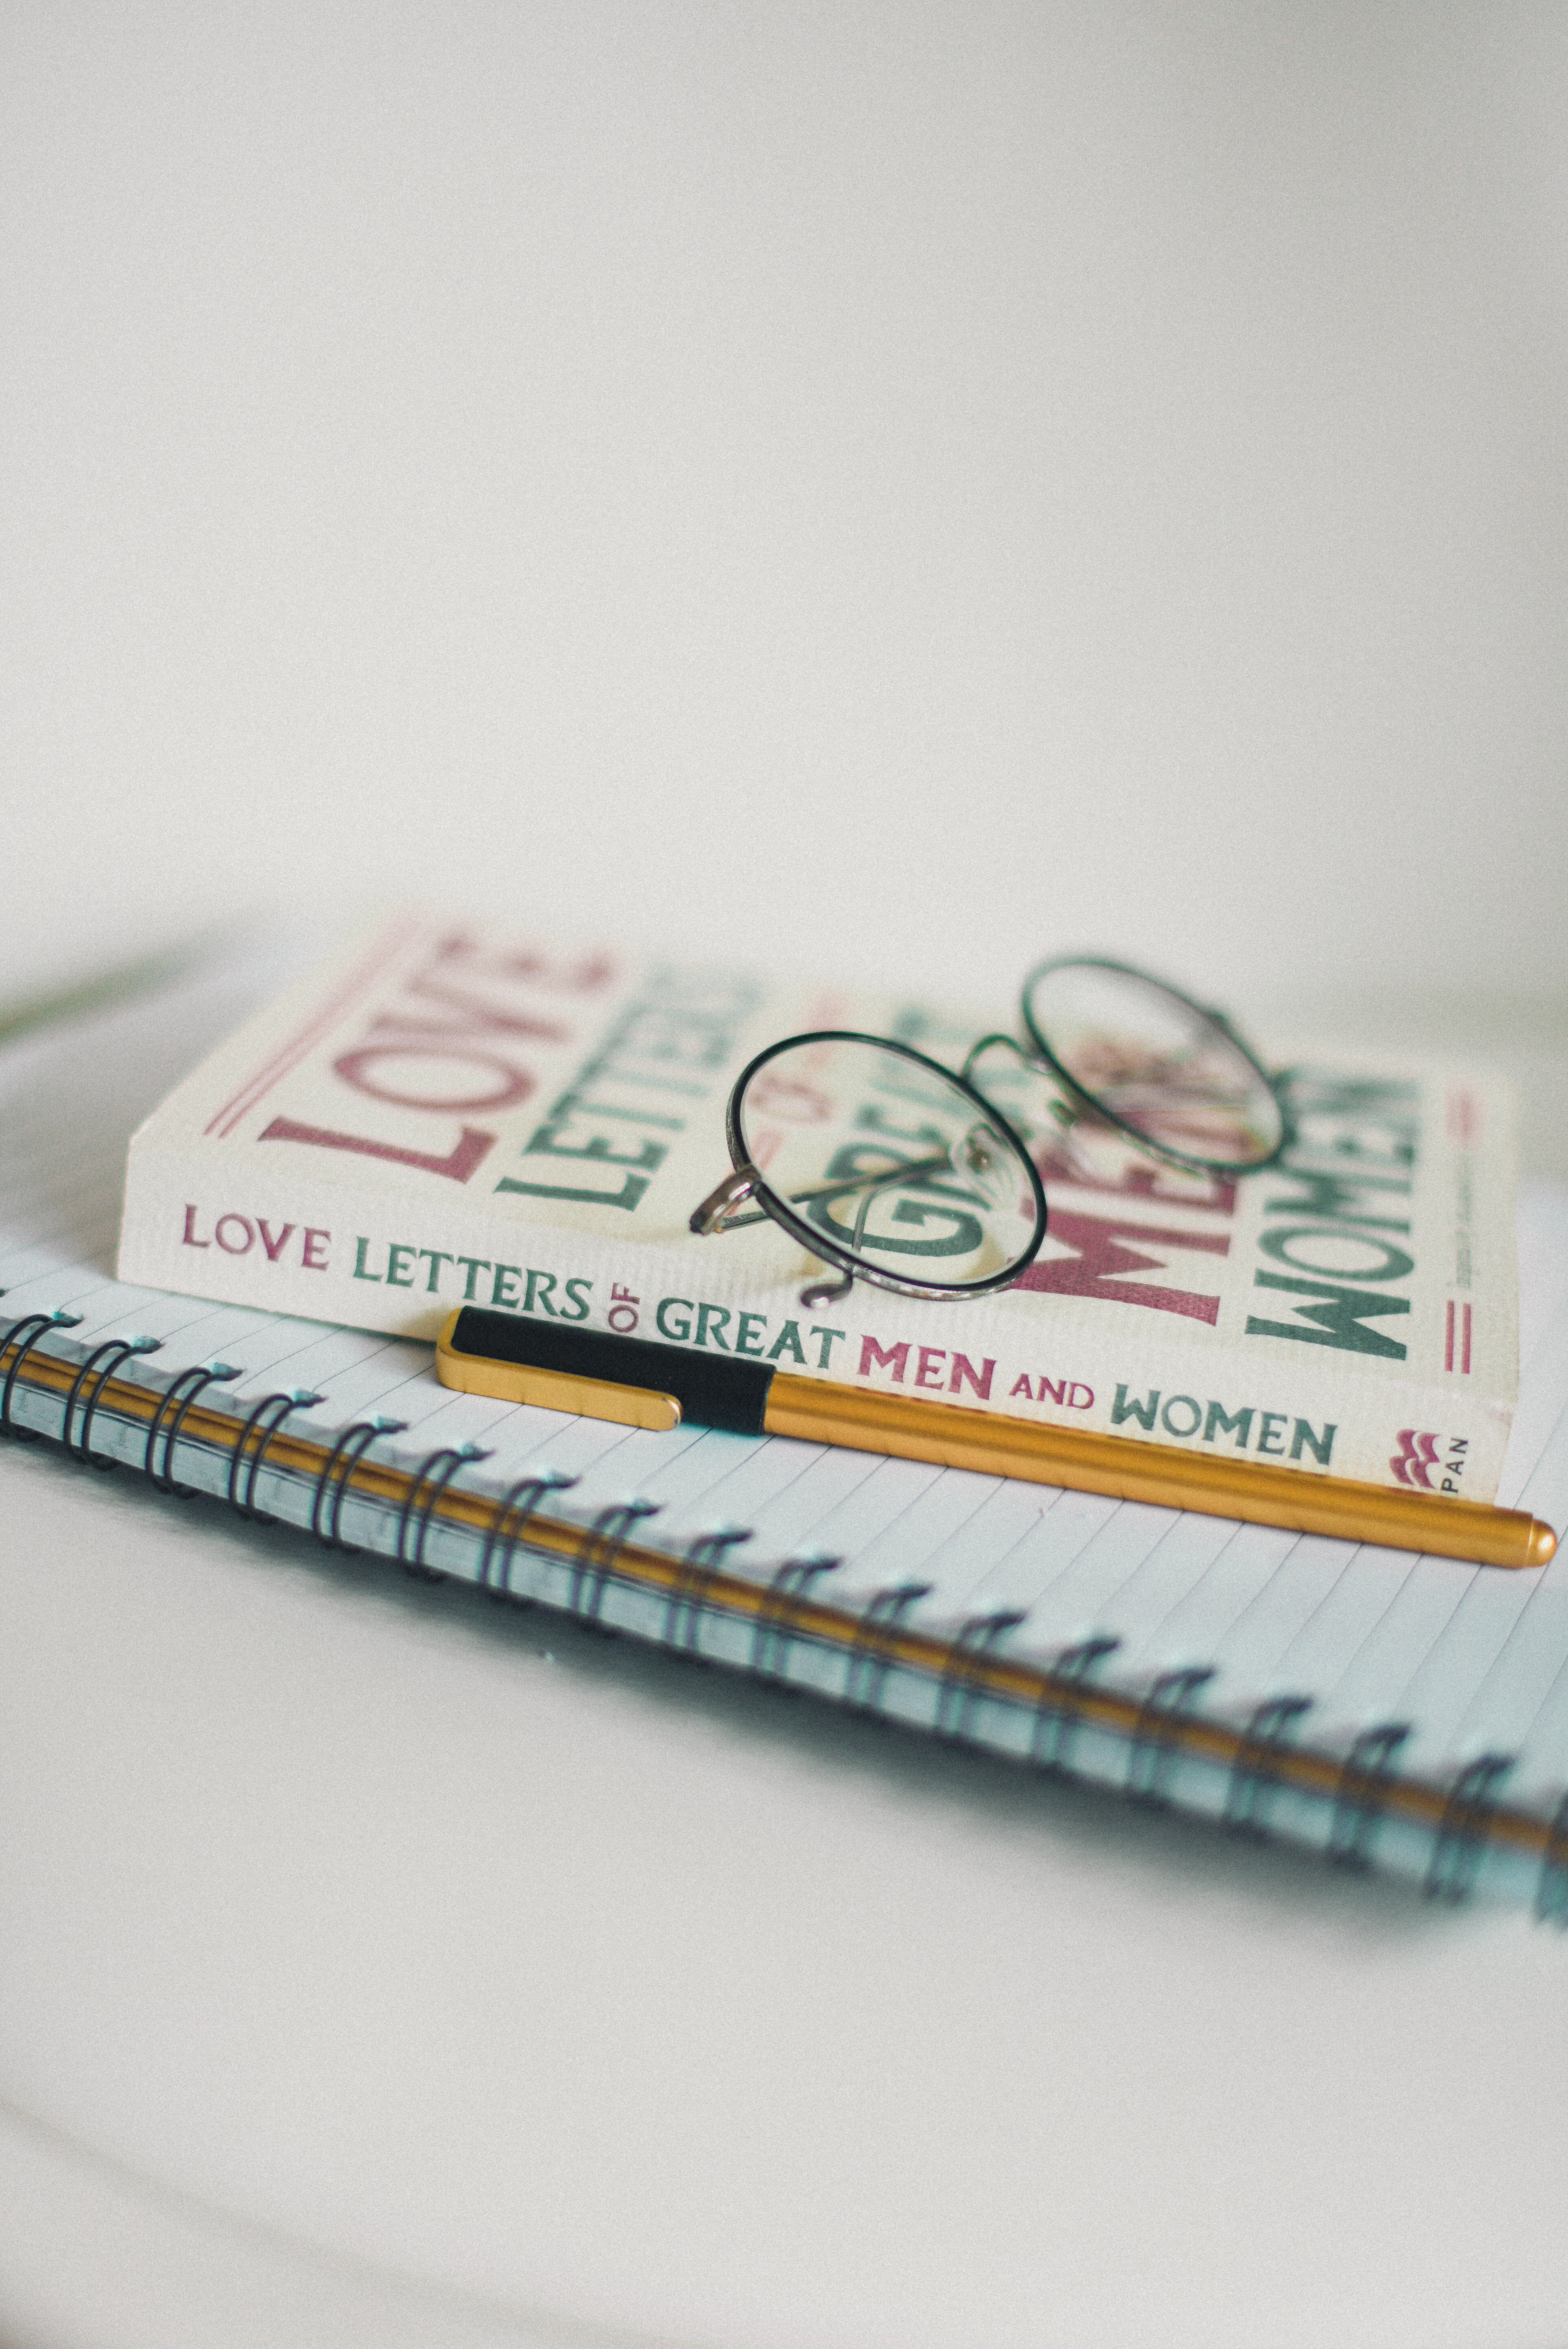 shallow focus photography of Love Letters of Great Men and Women book